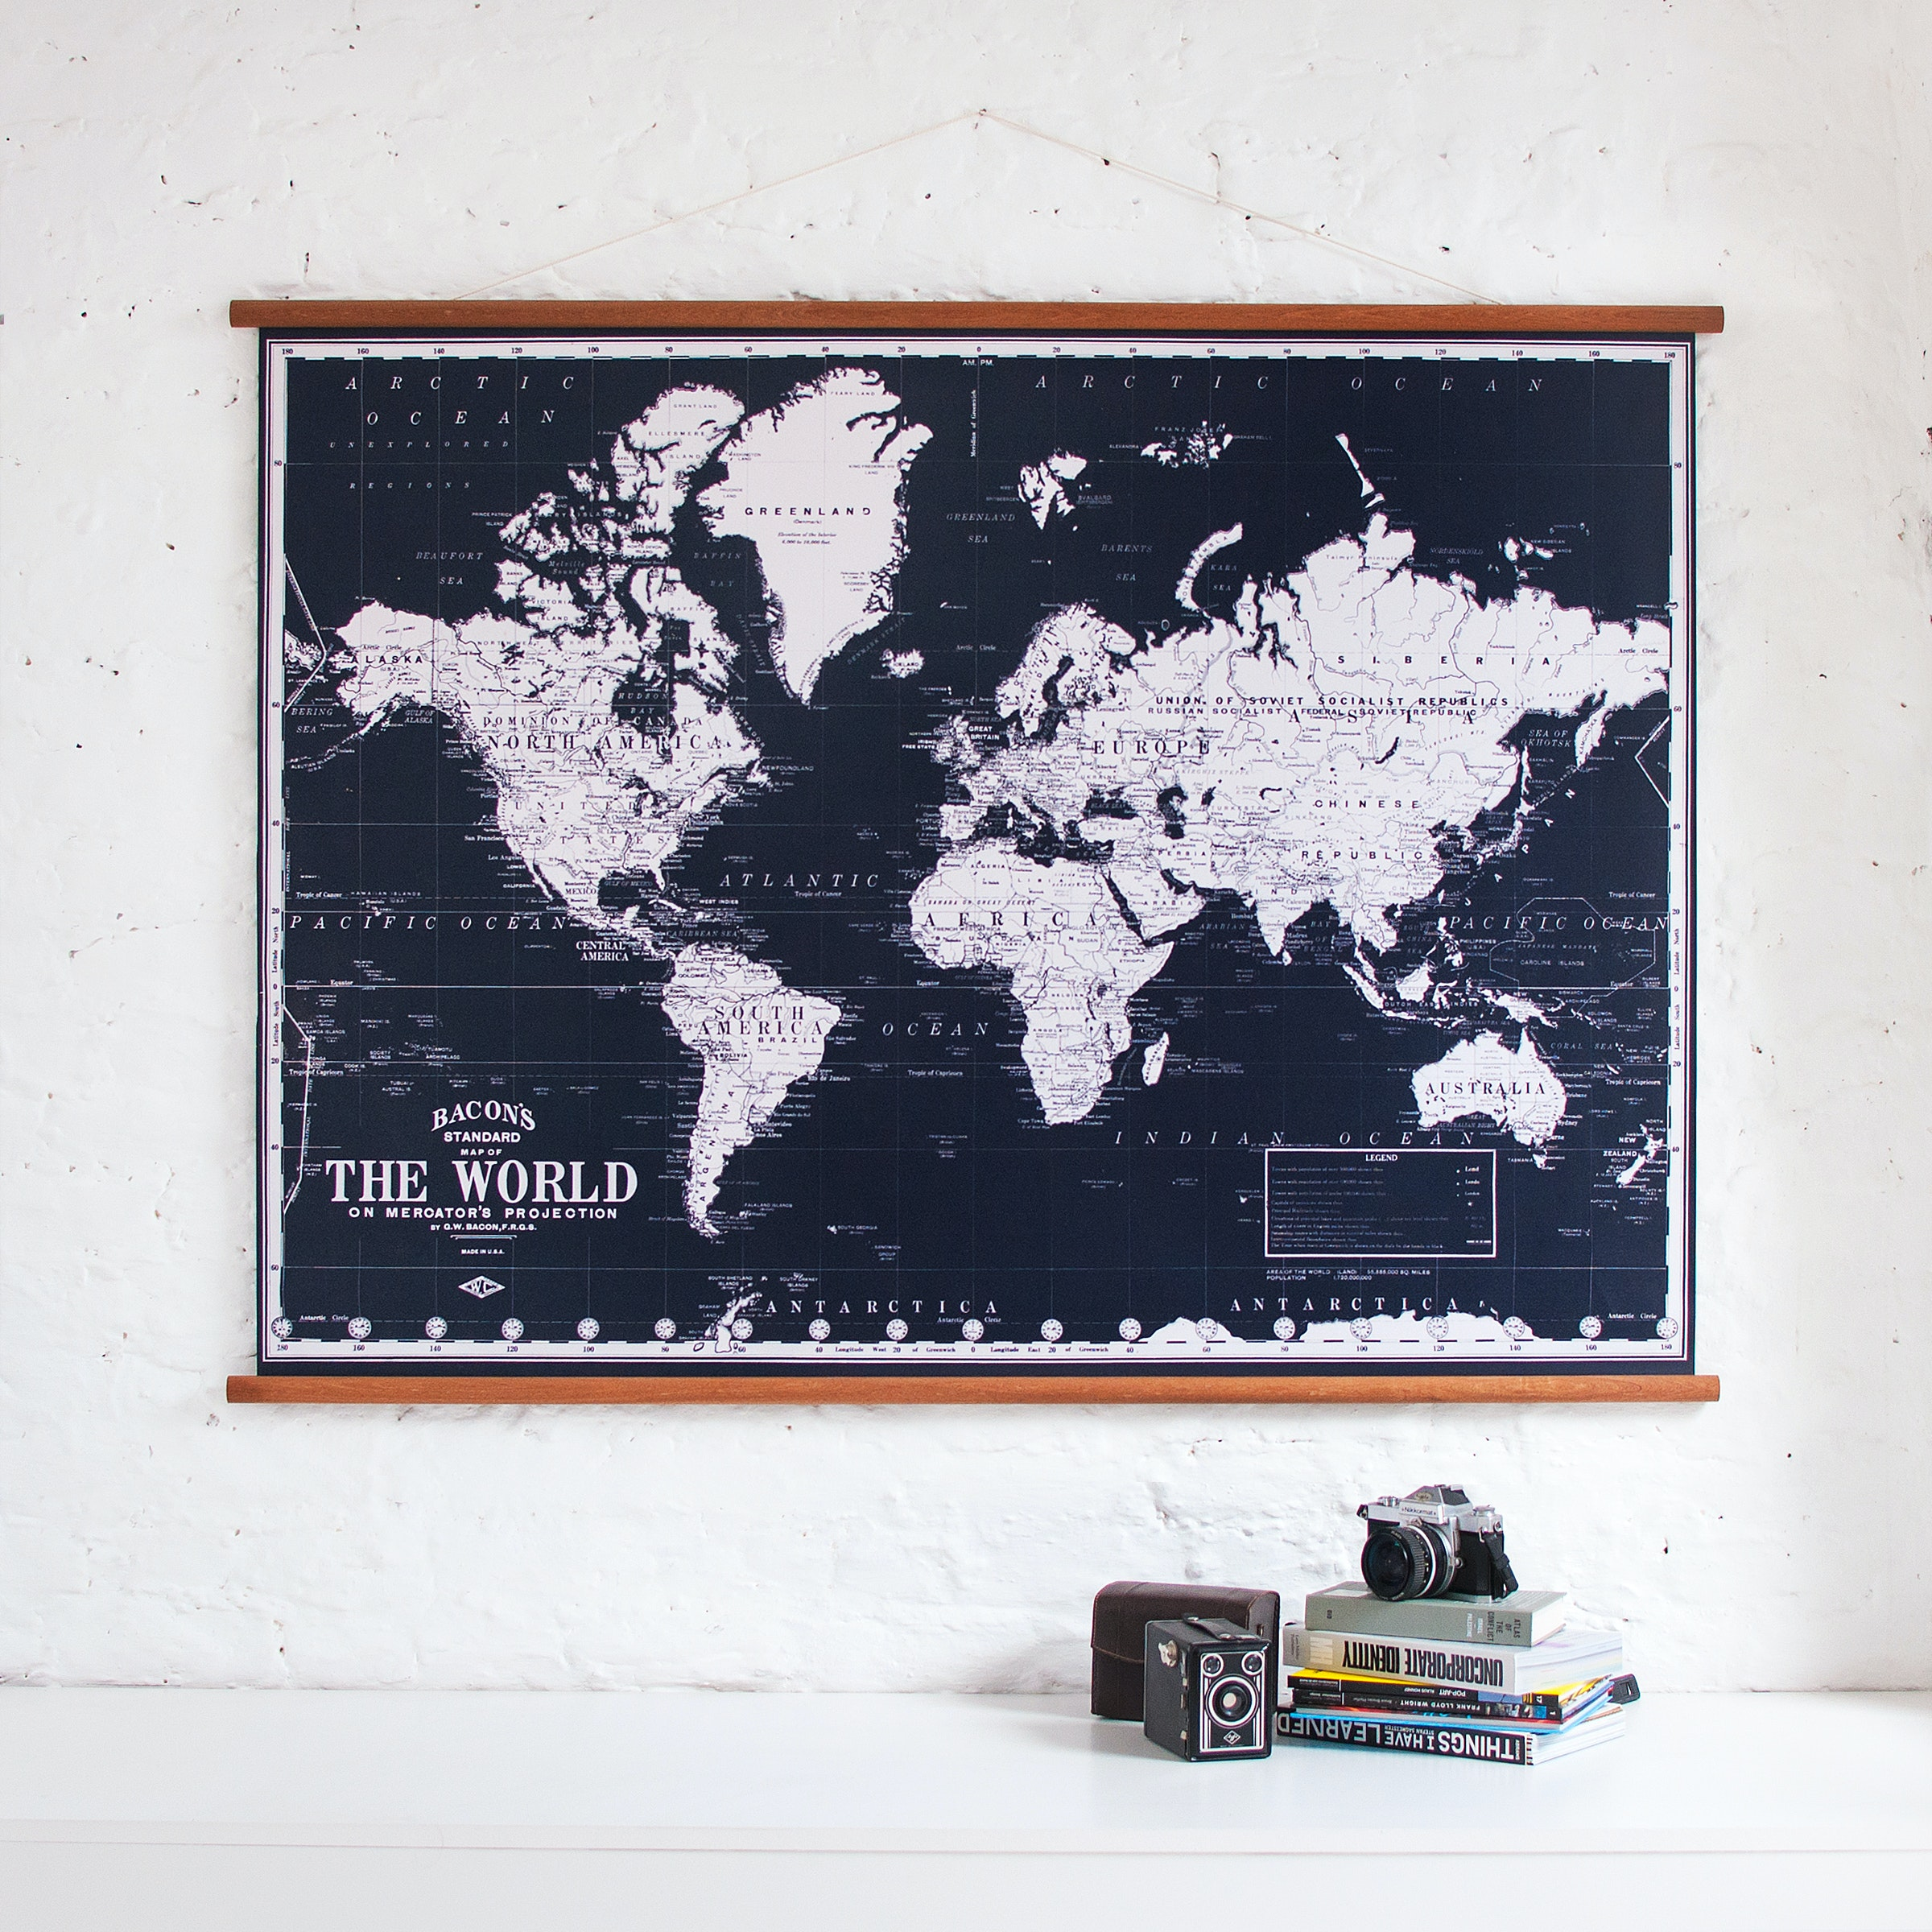 World Wall Map - Black on italy vintage poster, travel vintage poster, blue vintage poster, popular vintage poster, cambodia vintage poster, water vintage poster, switzerland vintage poster, architecture vintage poster, austria vintage poster, usa vintage poster, wallpapers vintage poster, japan vintage poster, solar system vintage poster, egypt vintage poster, london vintage poster, hong kong vintage poster, atlas vintage poster, indonesia vintage poster, india vintage poster, spain vintage poster,